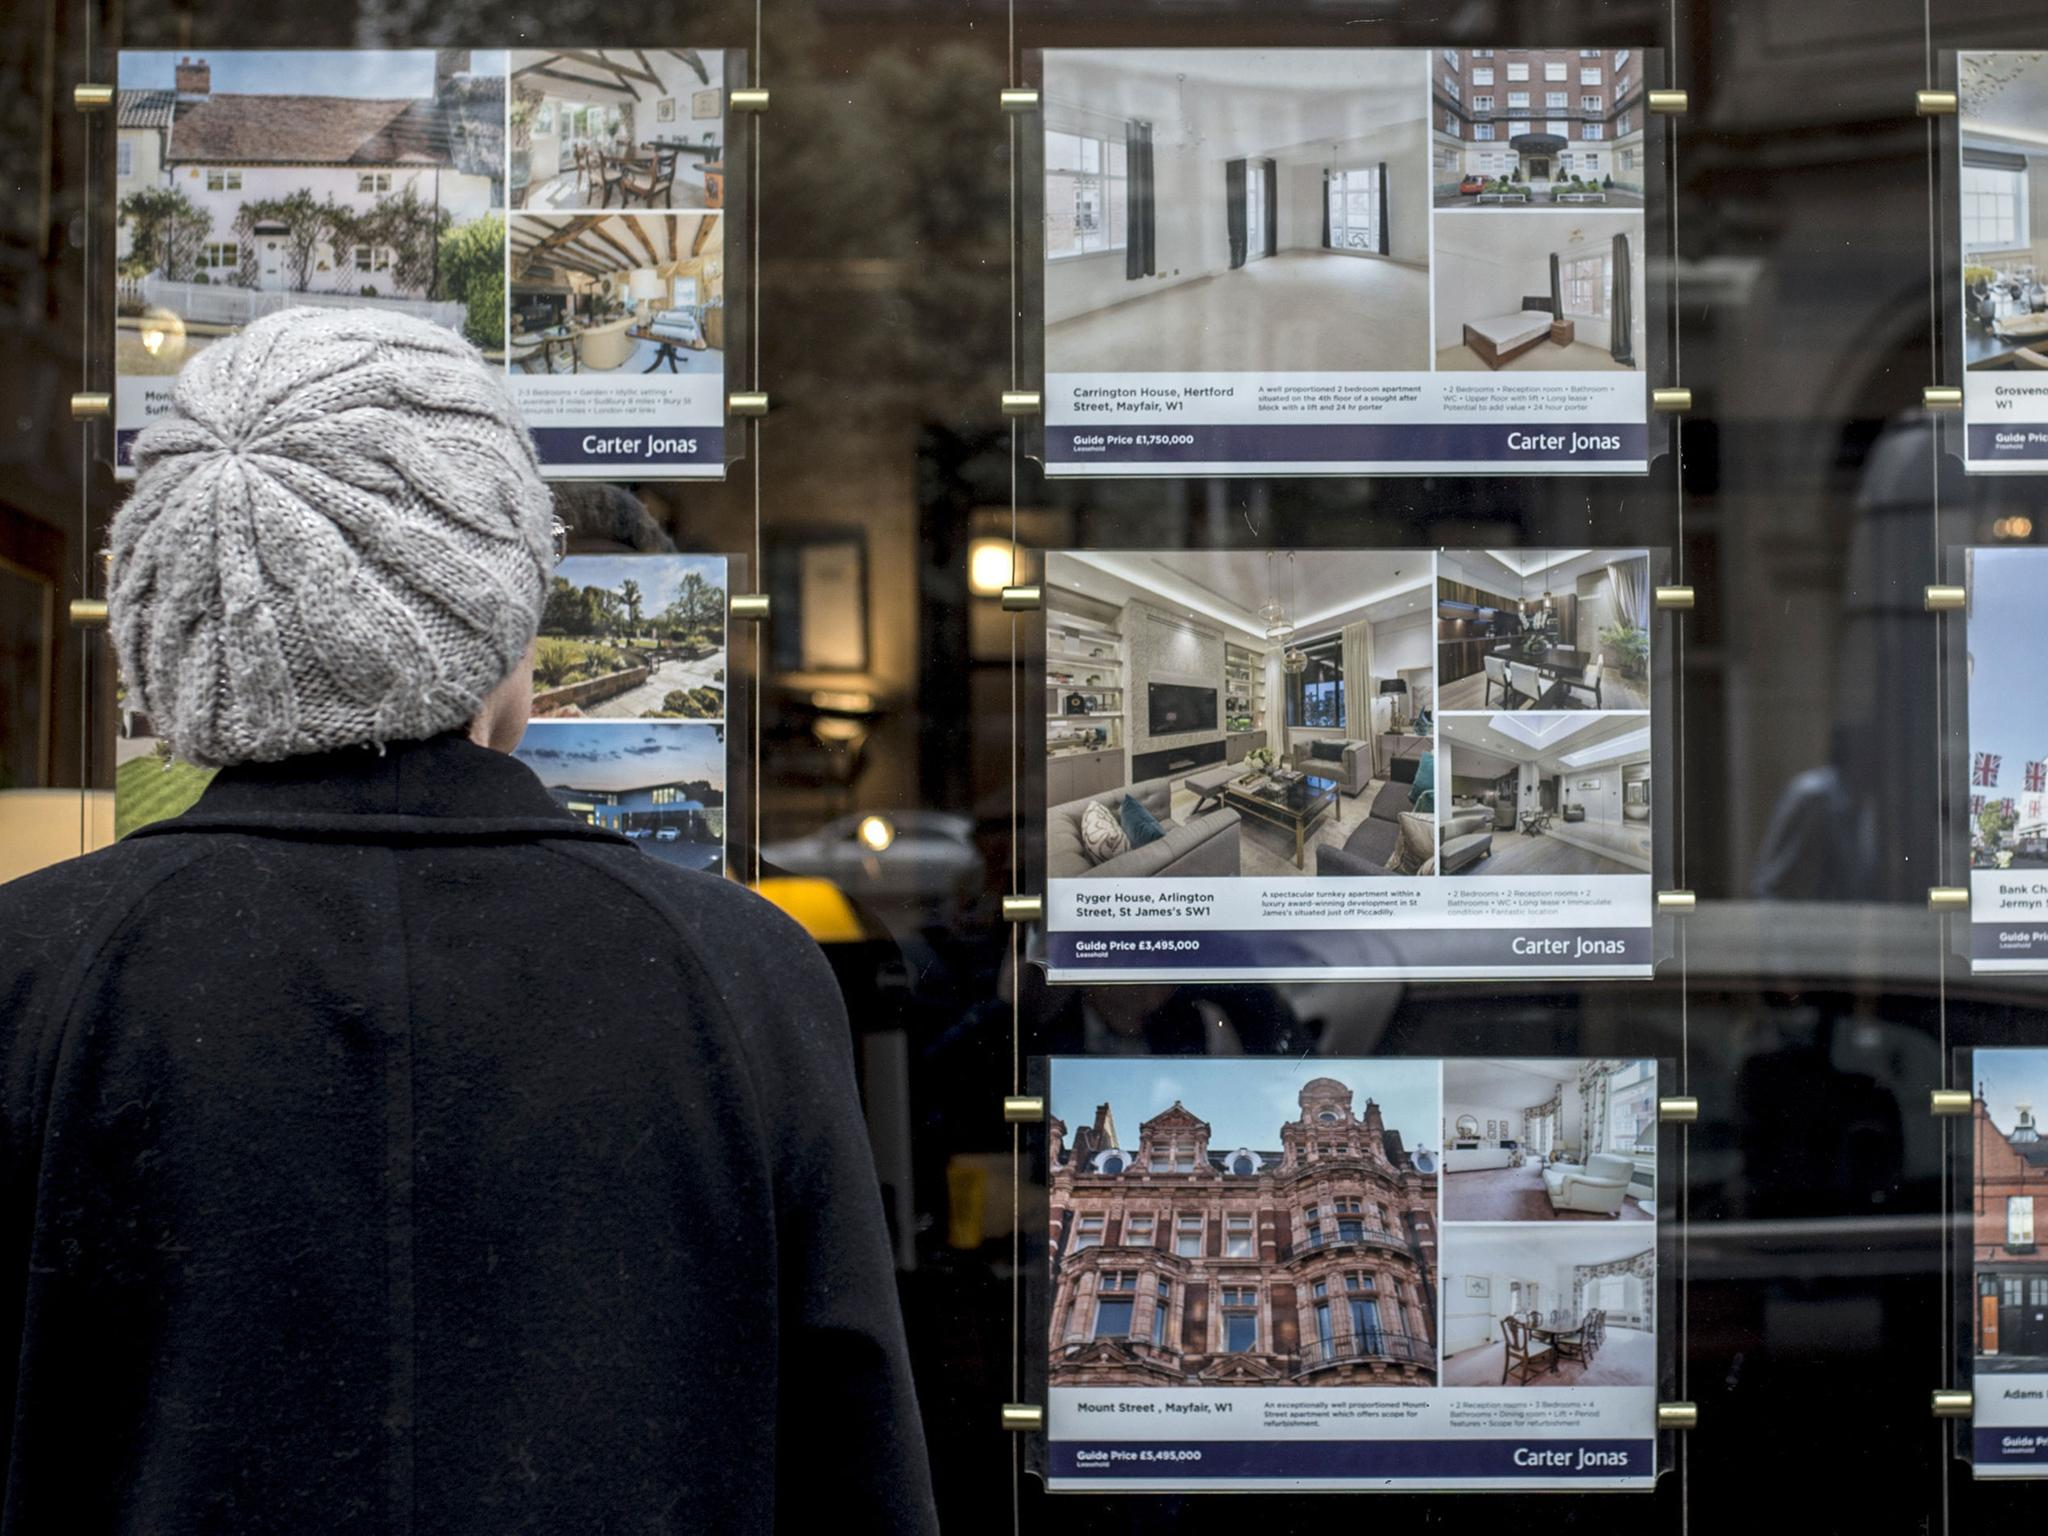 UK housing market weakness continues into 2018, finds RICS survey